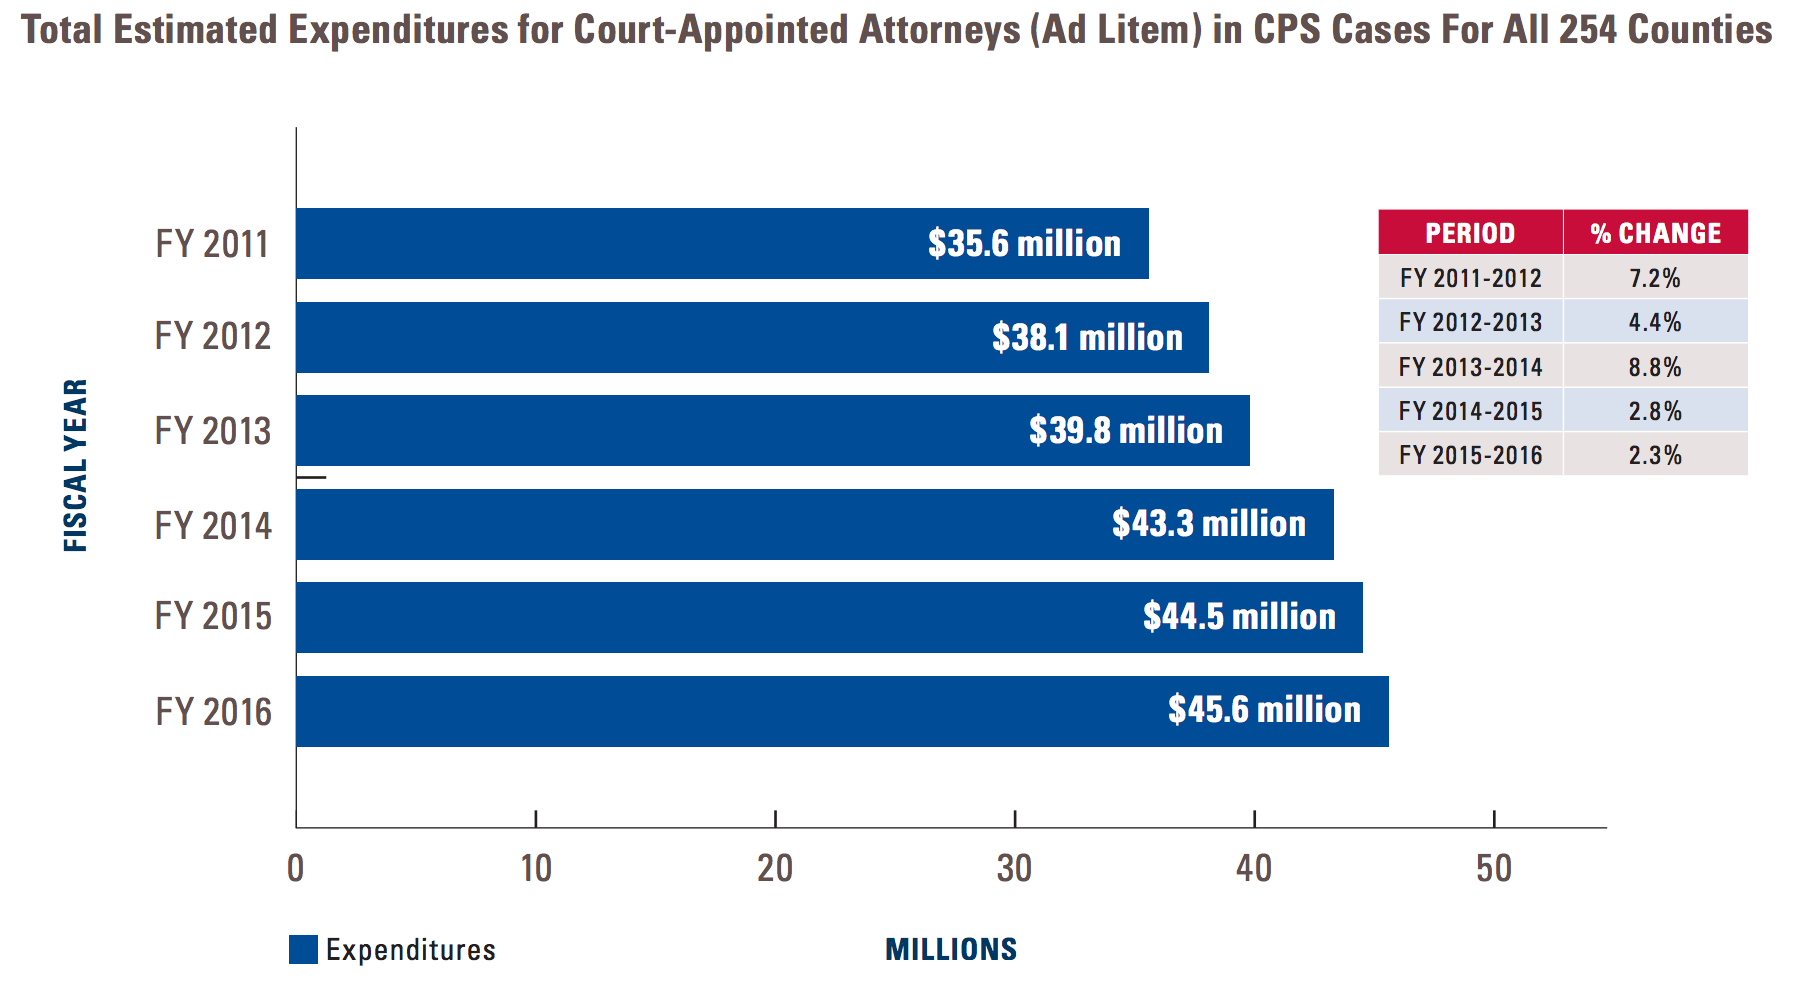 TAC - Court-Appointed Attorneys in Child Protective Services Cases